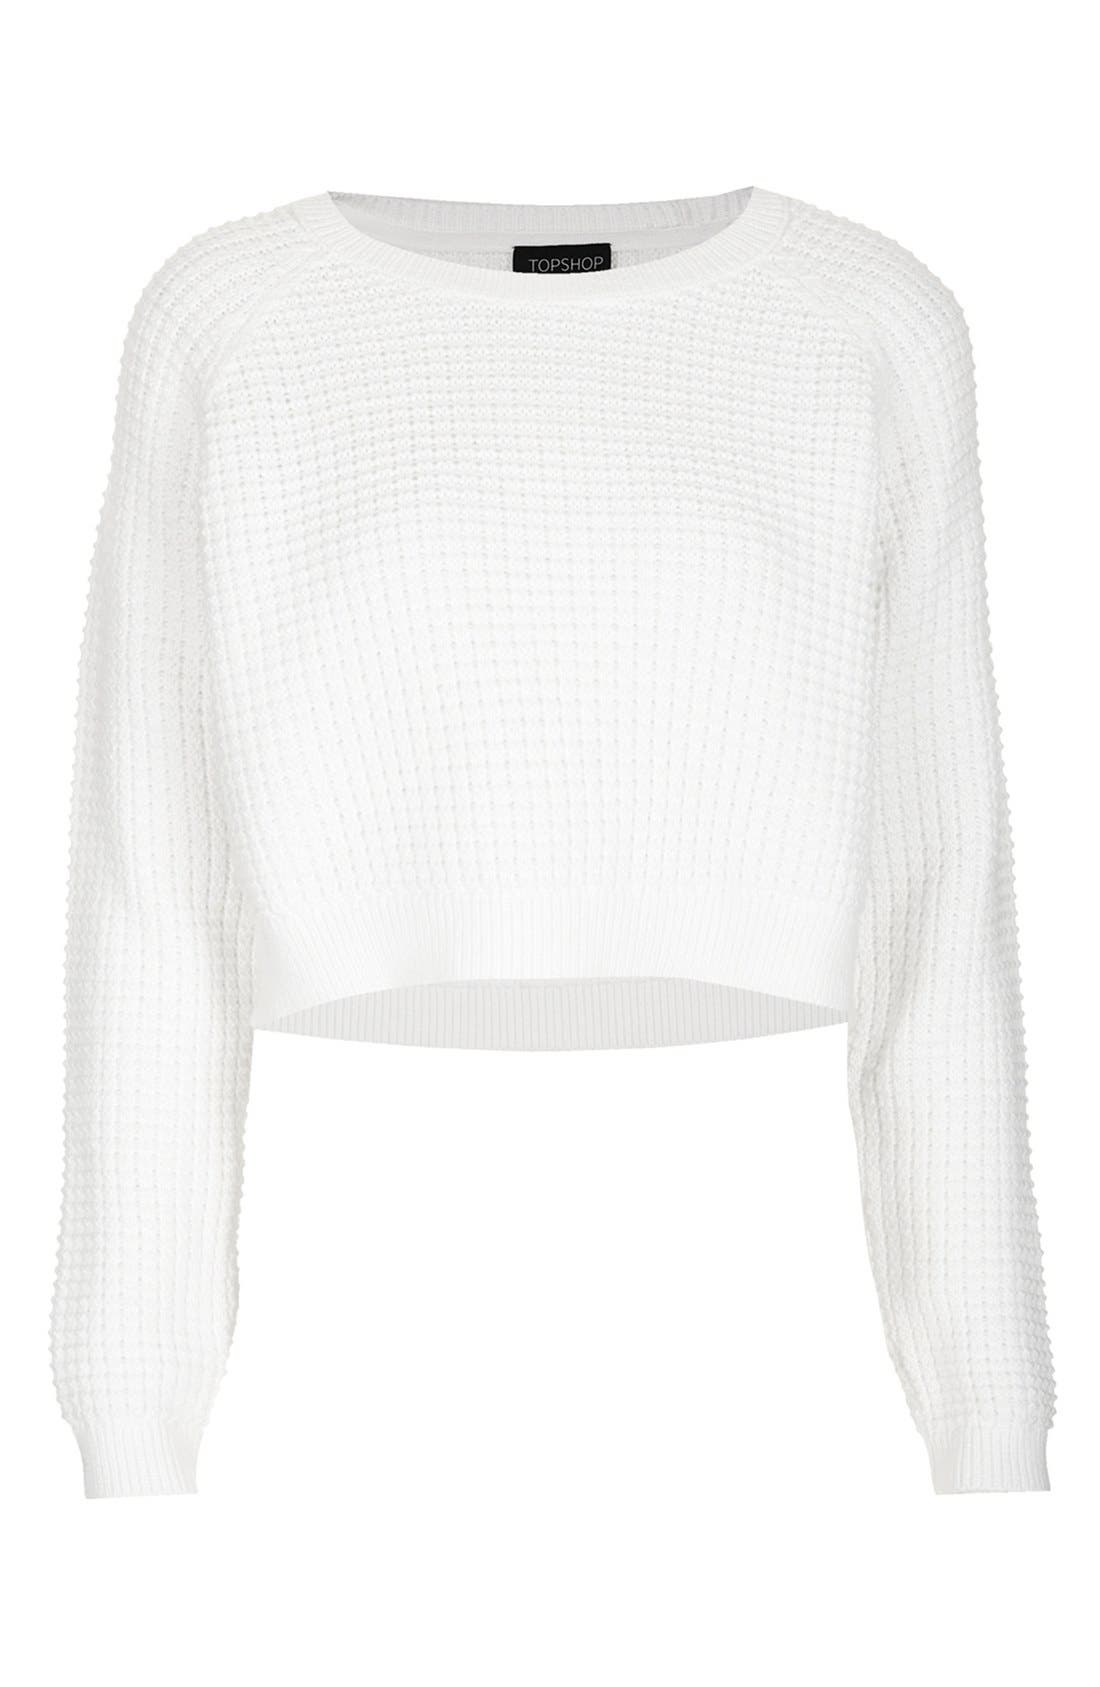 Alternate Image 3  - Topshop 'Fisherman' Crop Sweater